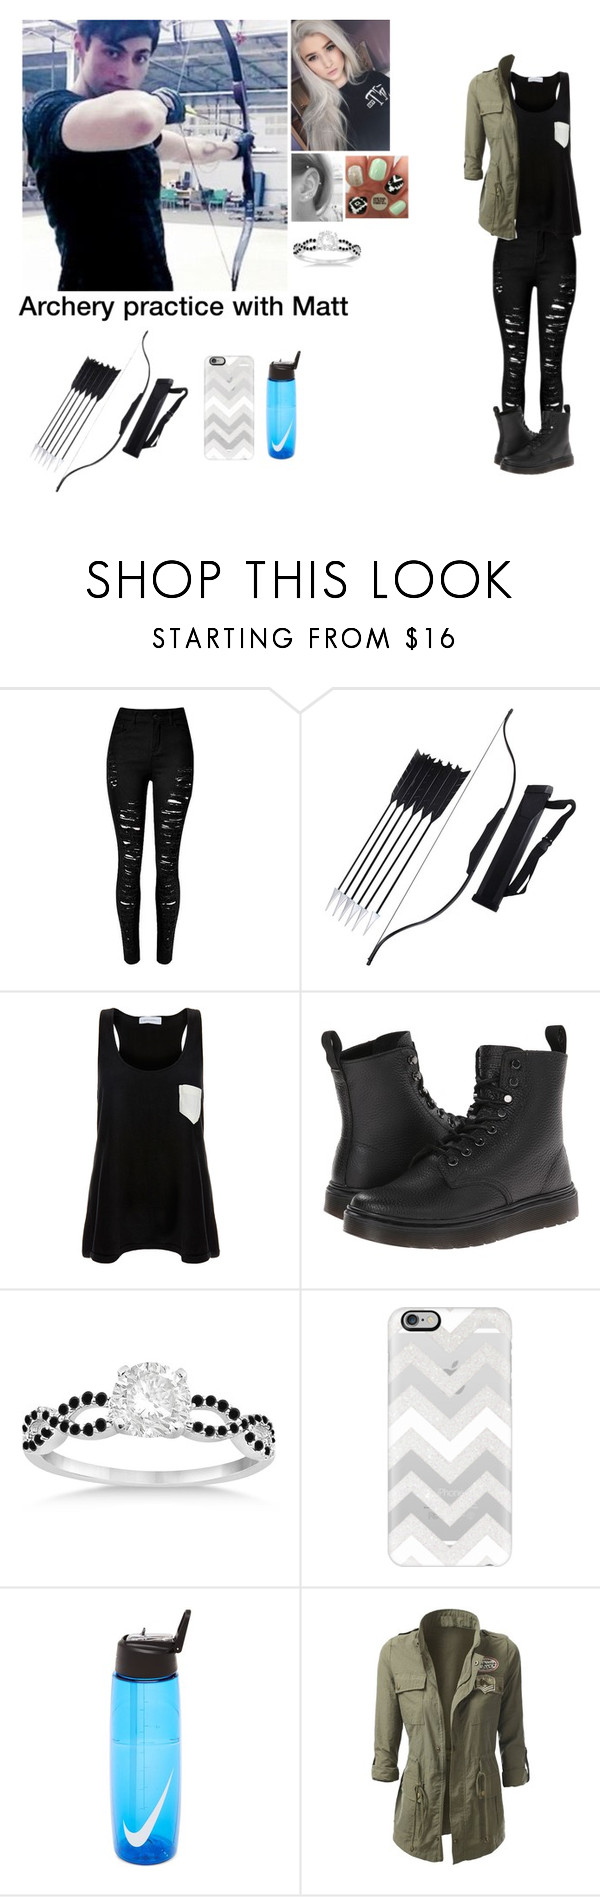 """""""Archery practice with Matt"""" by brookie5sos ❤ liked on Polyvore featuring Solid & Striped, Dr. Martens, Allurez, Casetify and NIKE"""